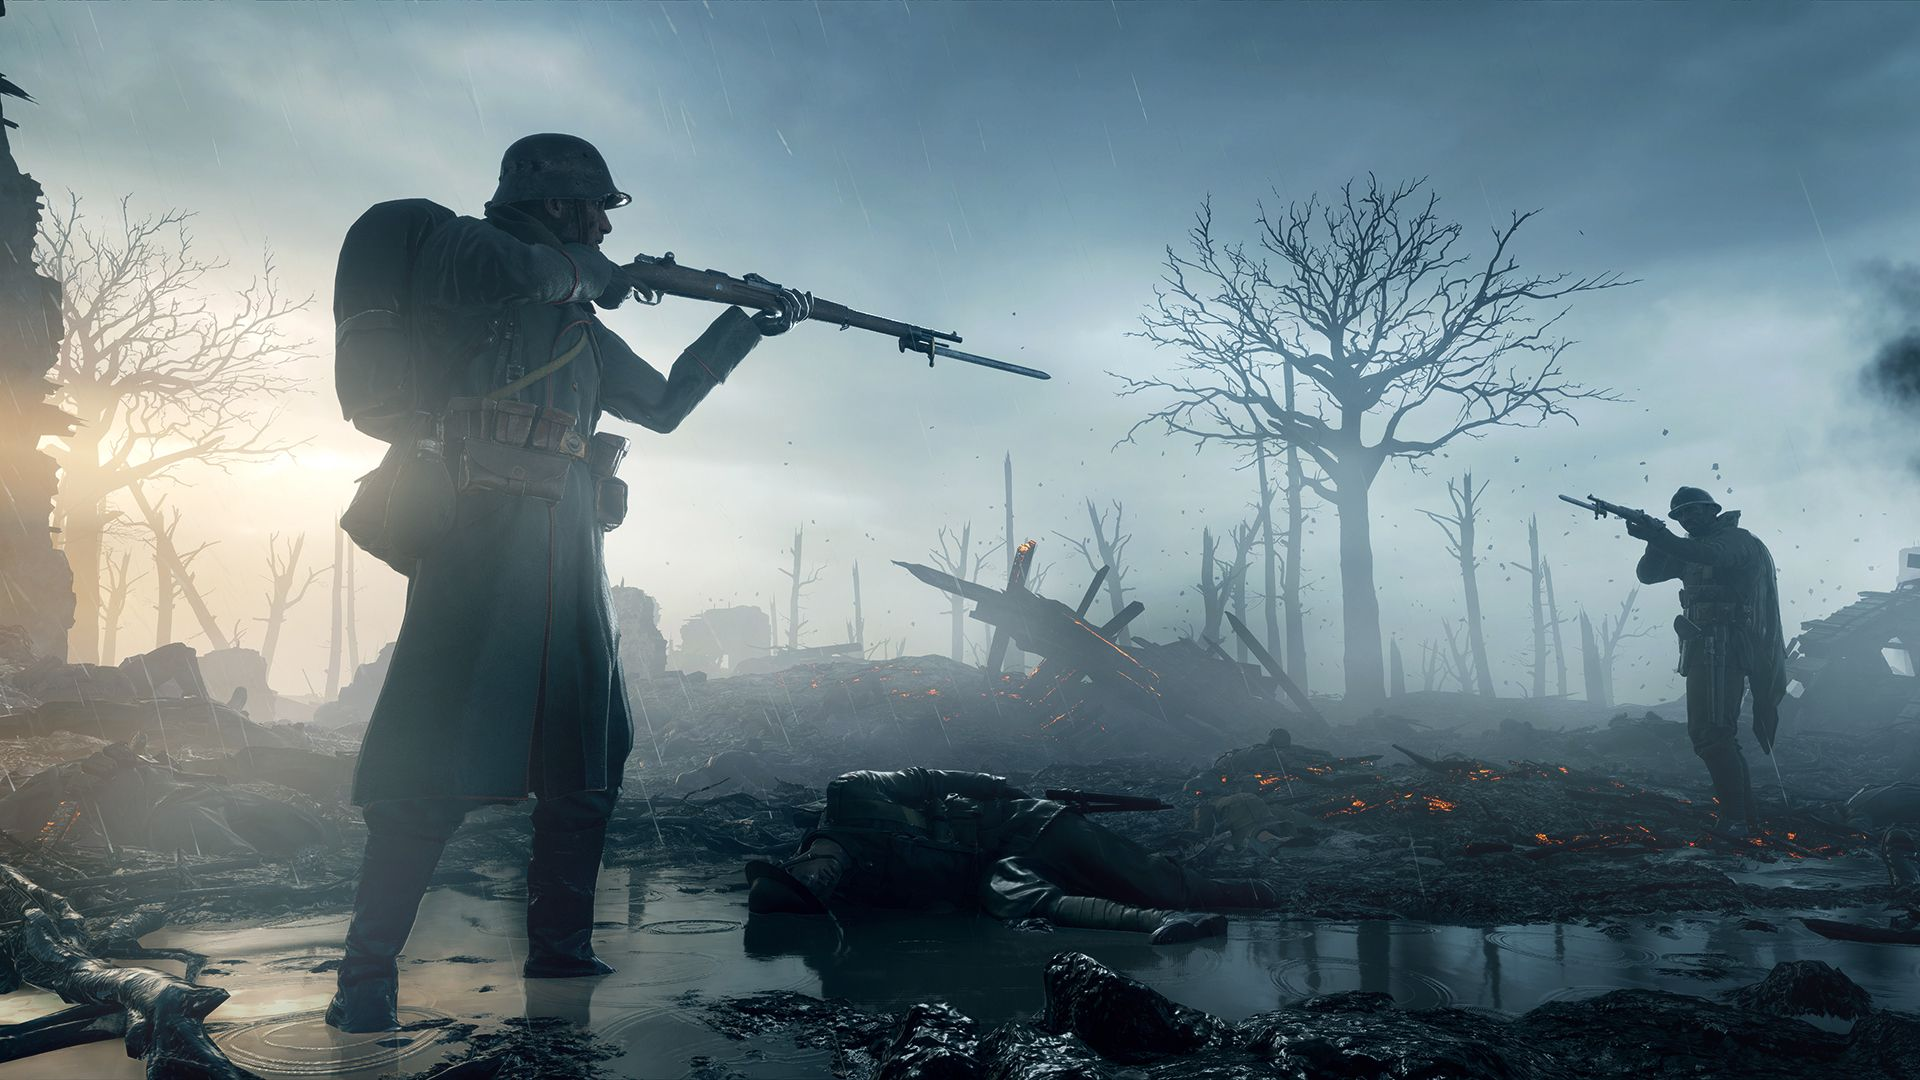 Battlefield 1 players cease fire to observe 100th anniversary of WWI armistice